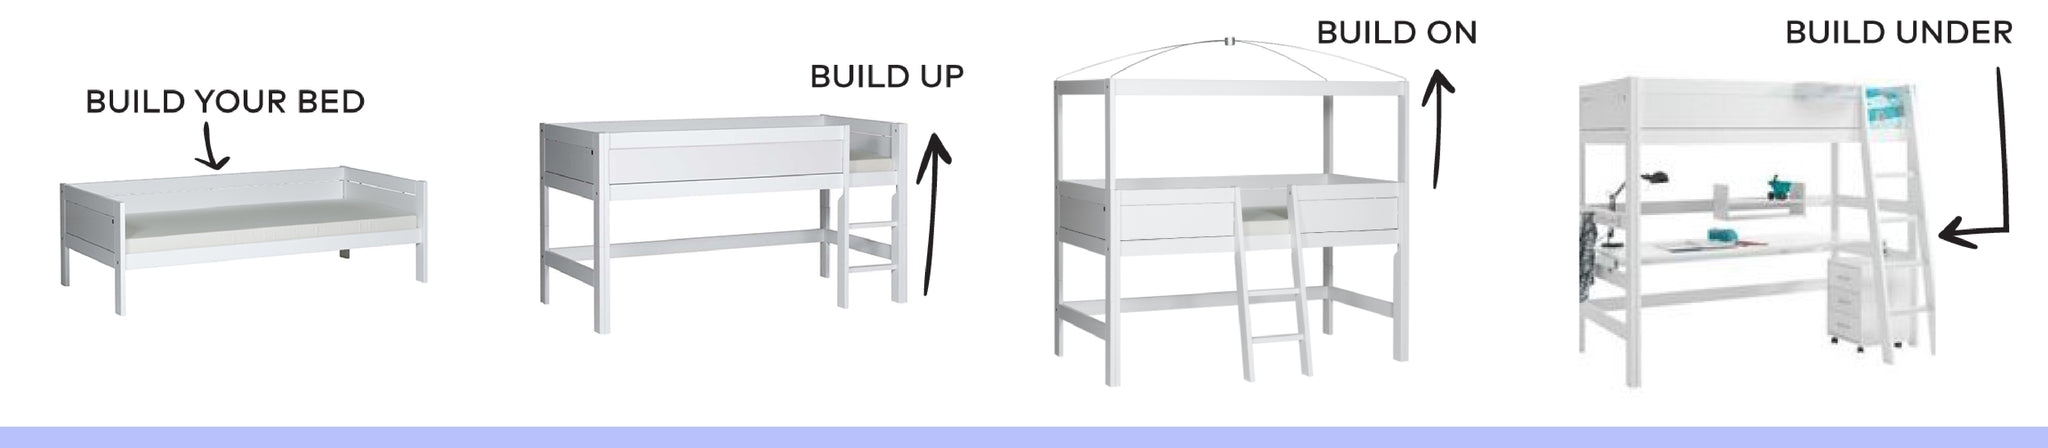 Lifetime bed system, build your kids bed up, above and under.